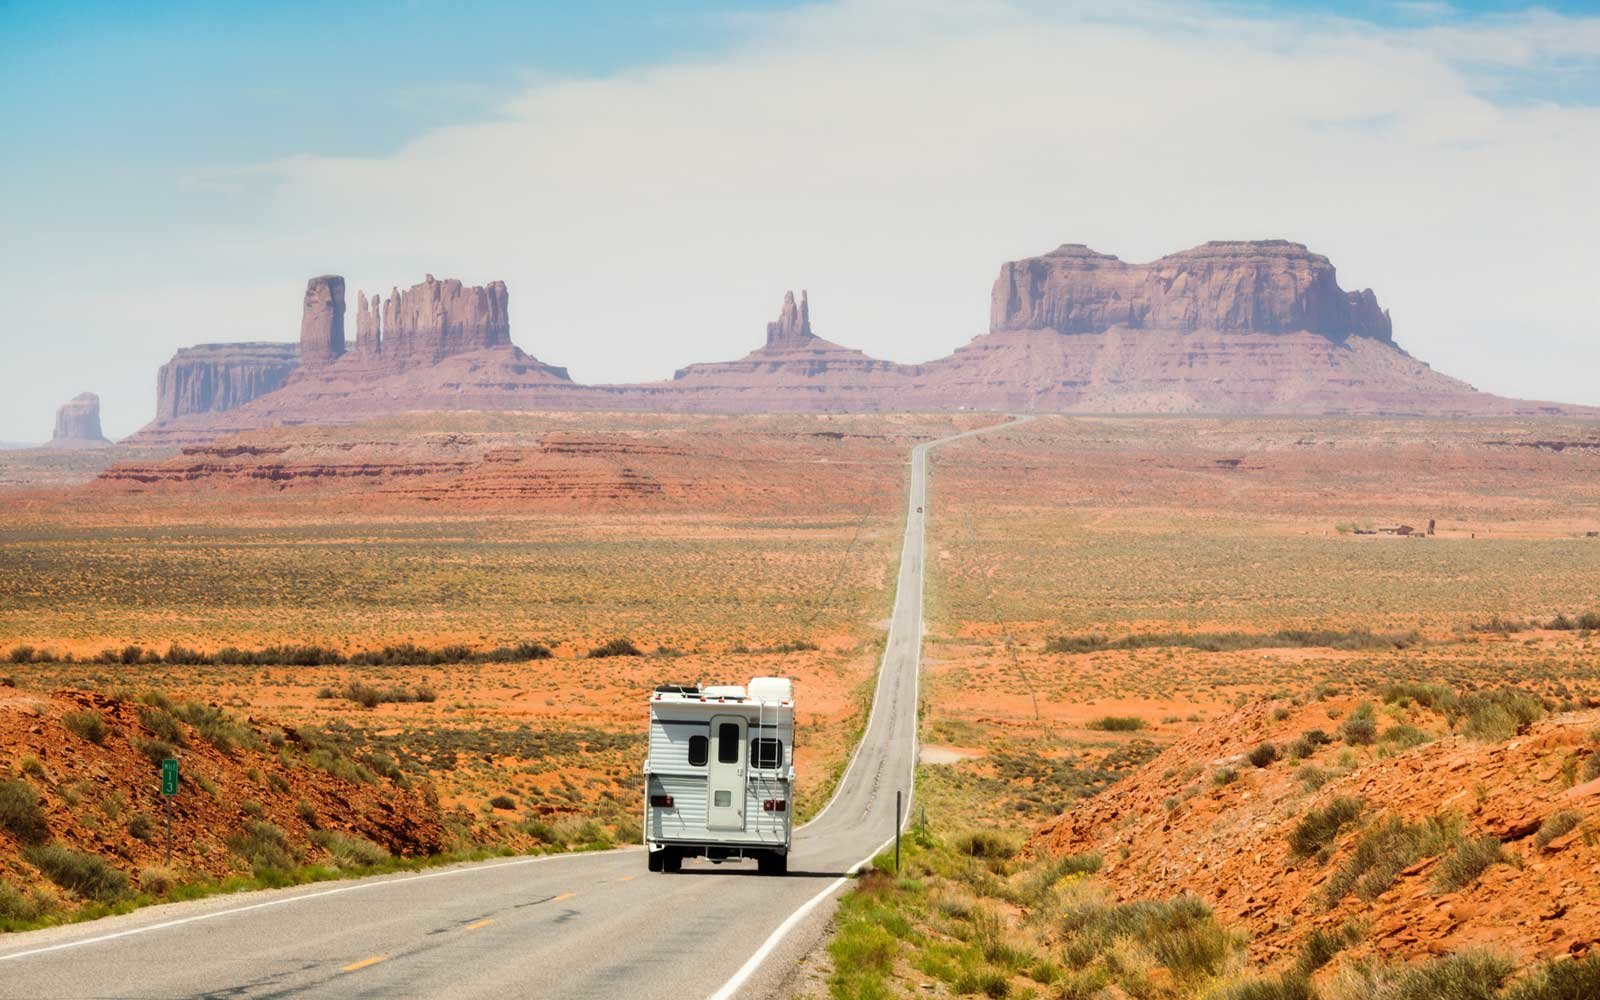 American Southwest on a highway road trip near Monument Valley Tribal Park.